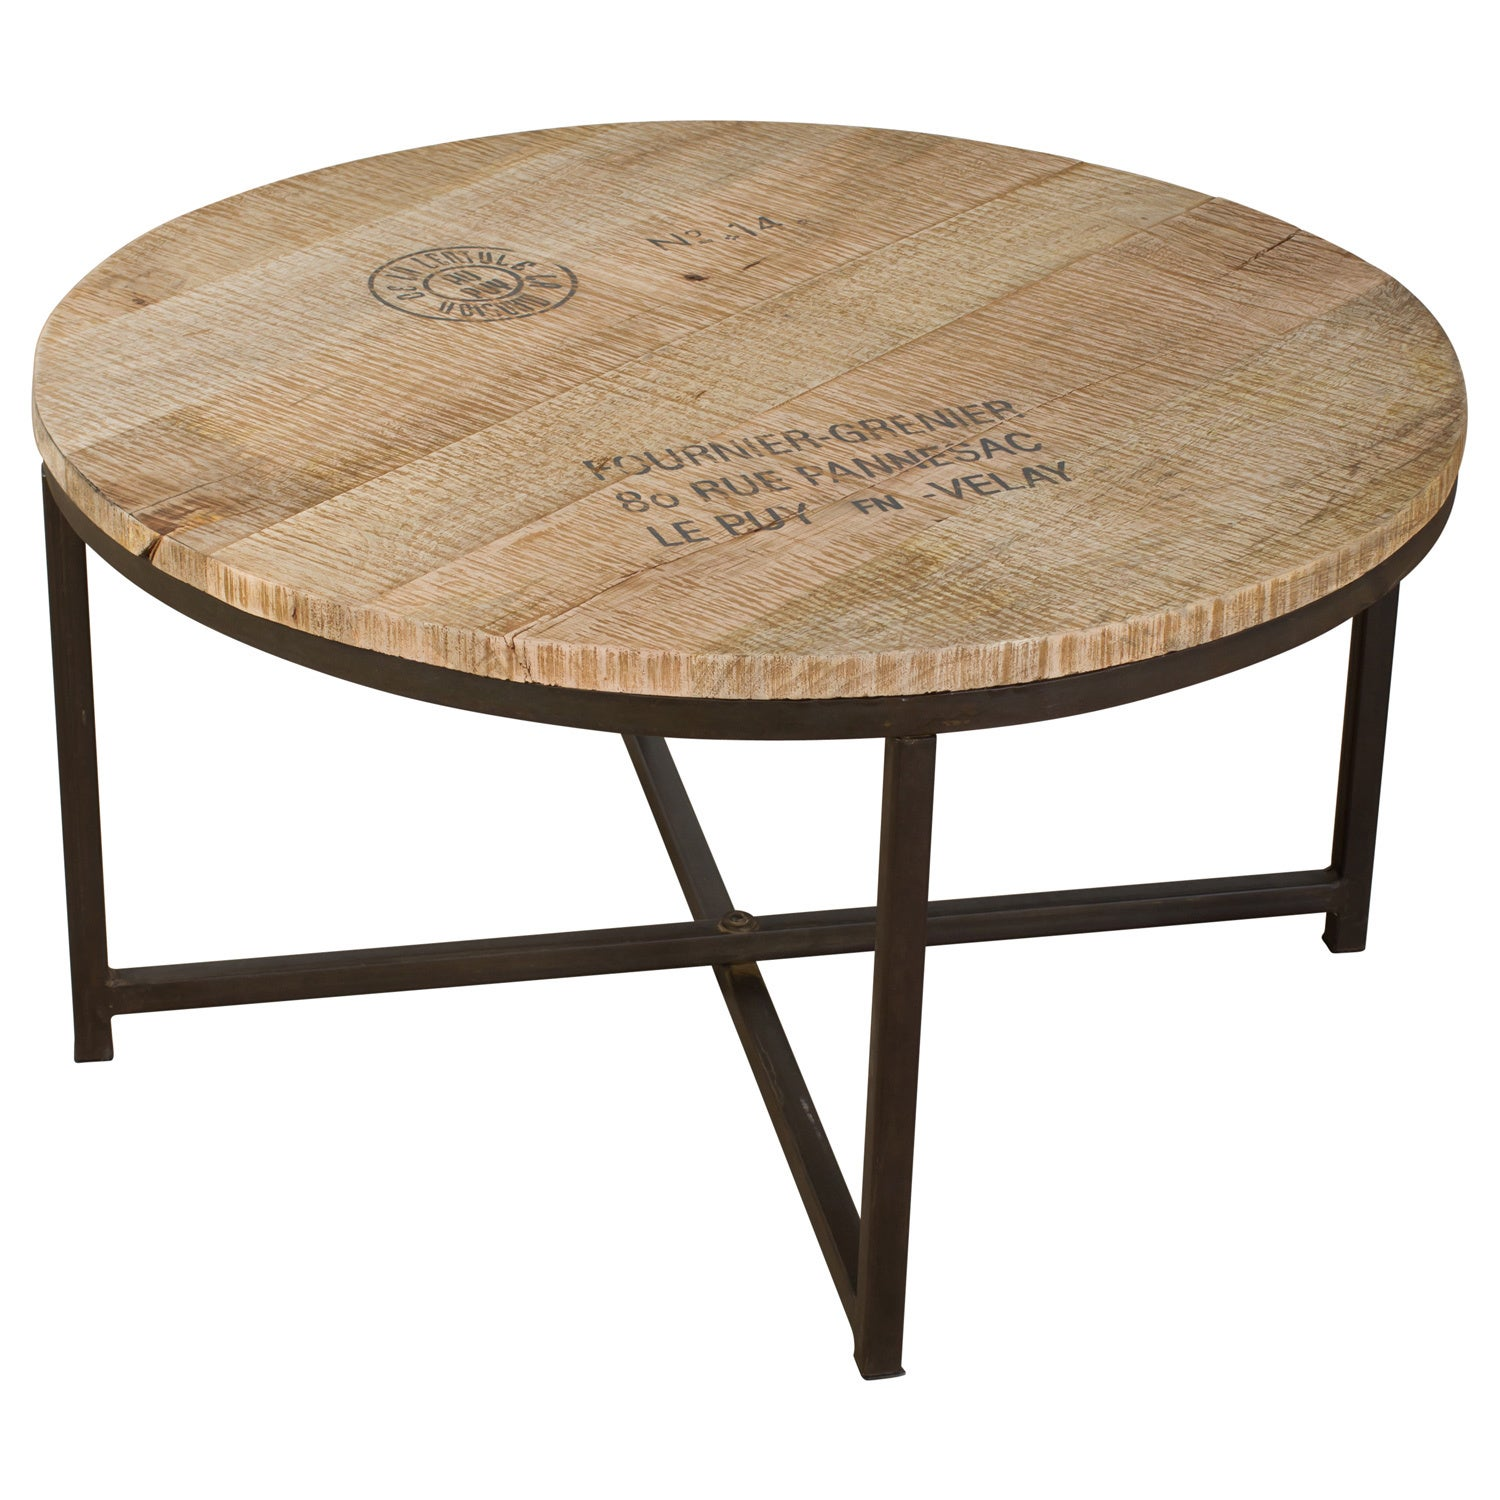 ayodhya round coffee table india overstock shopping